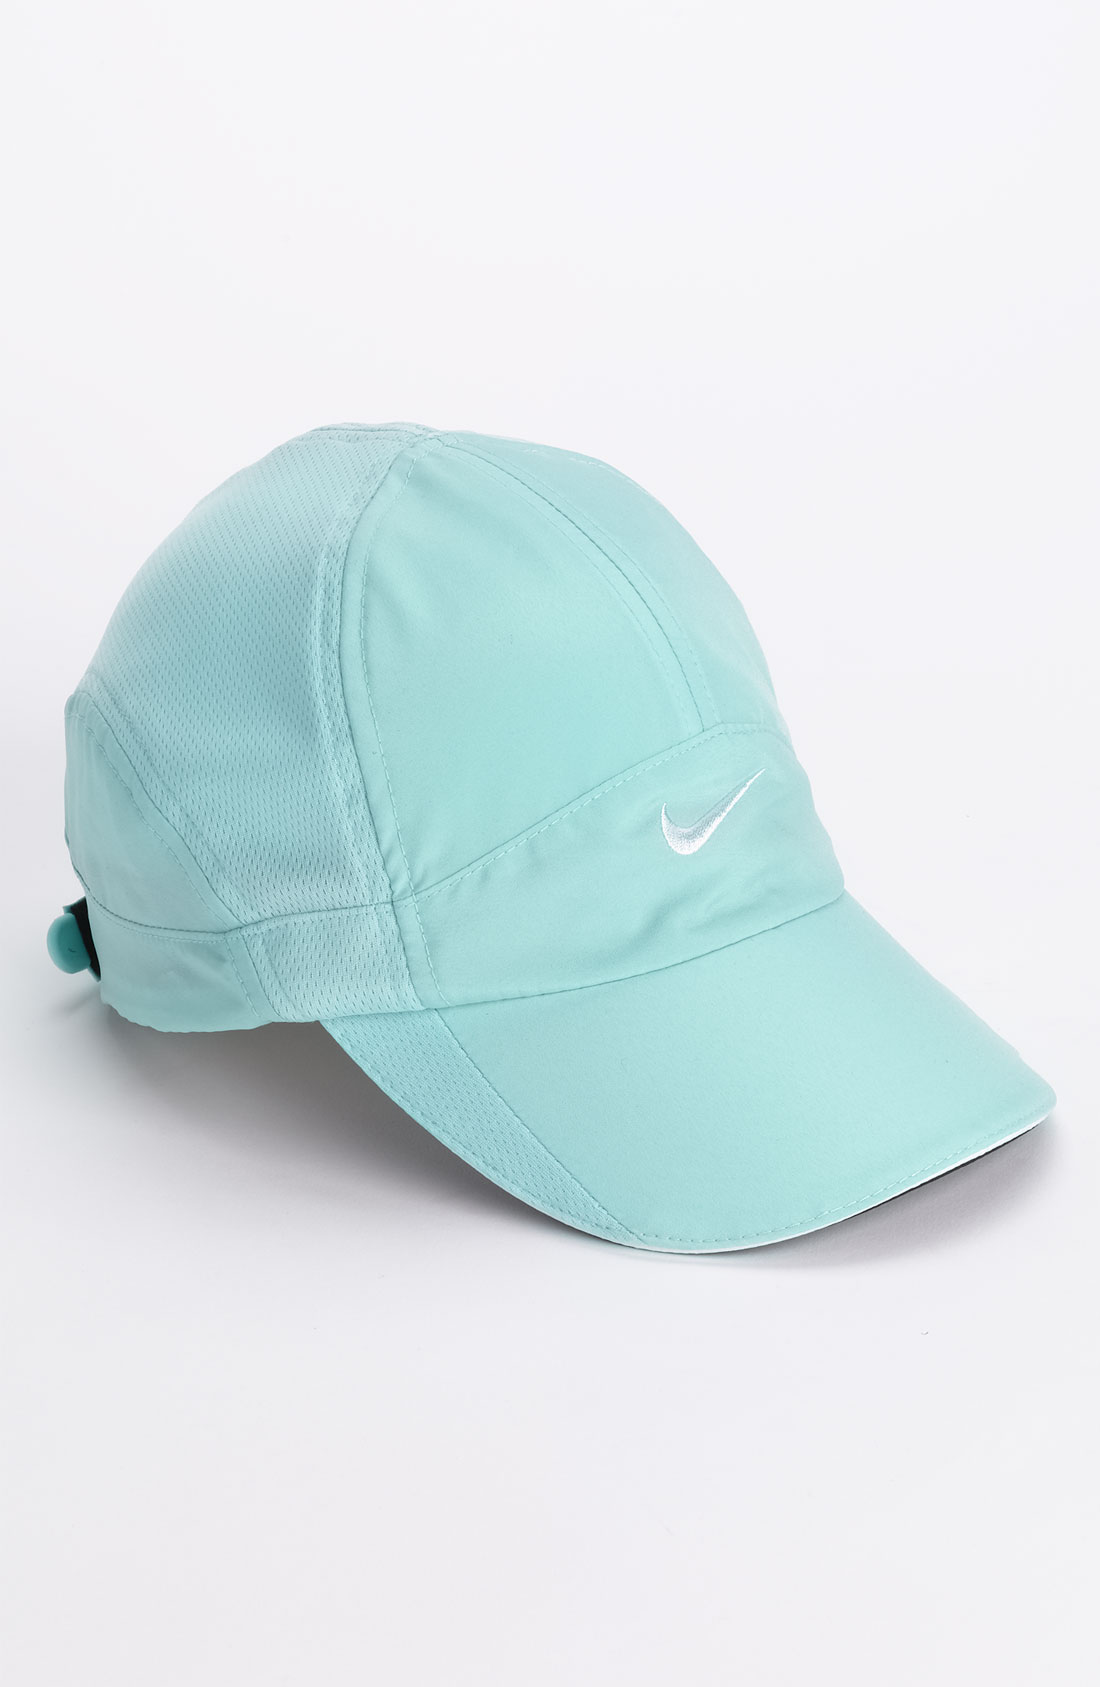 nike feather light cap in blue green lyst. Black Bedroom Furniture Sets. Home Design Ideas